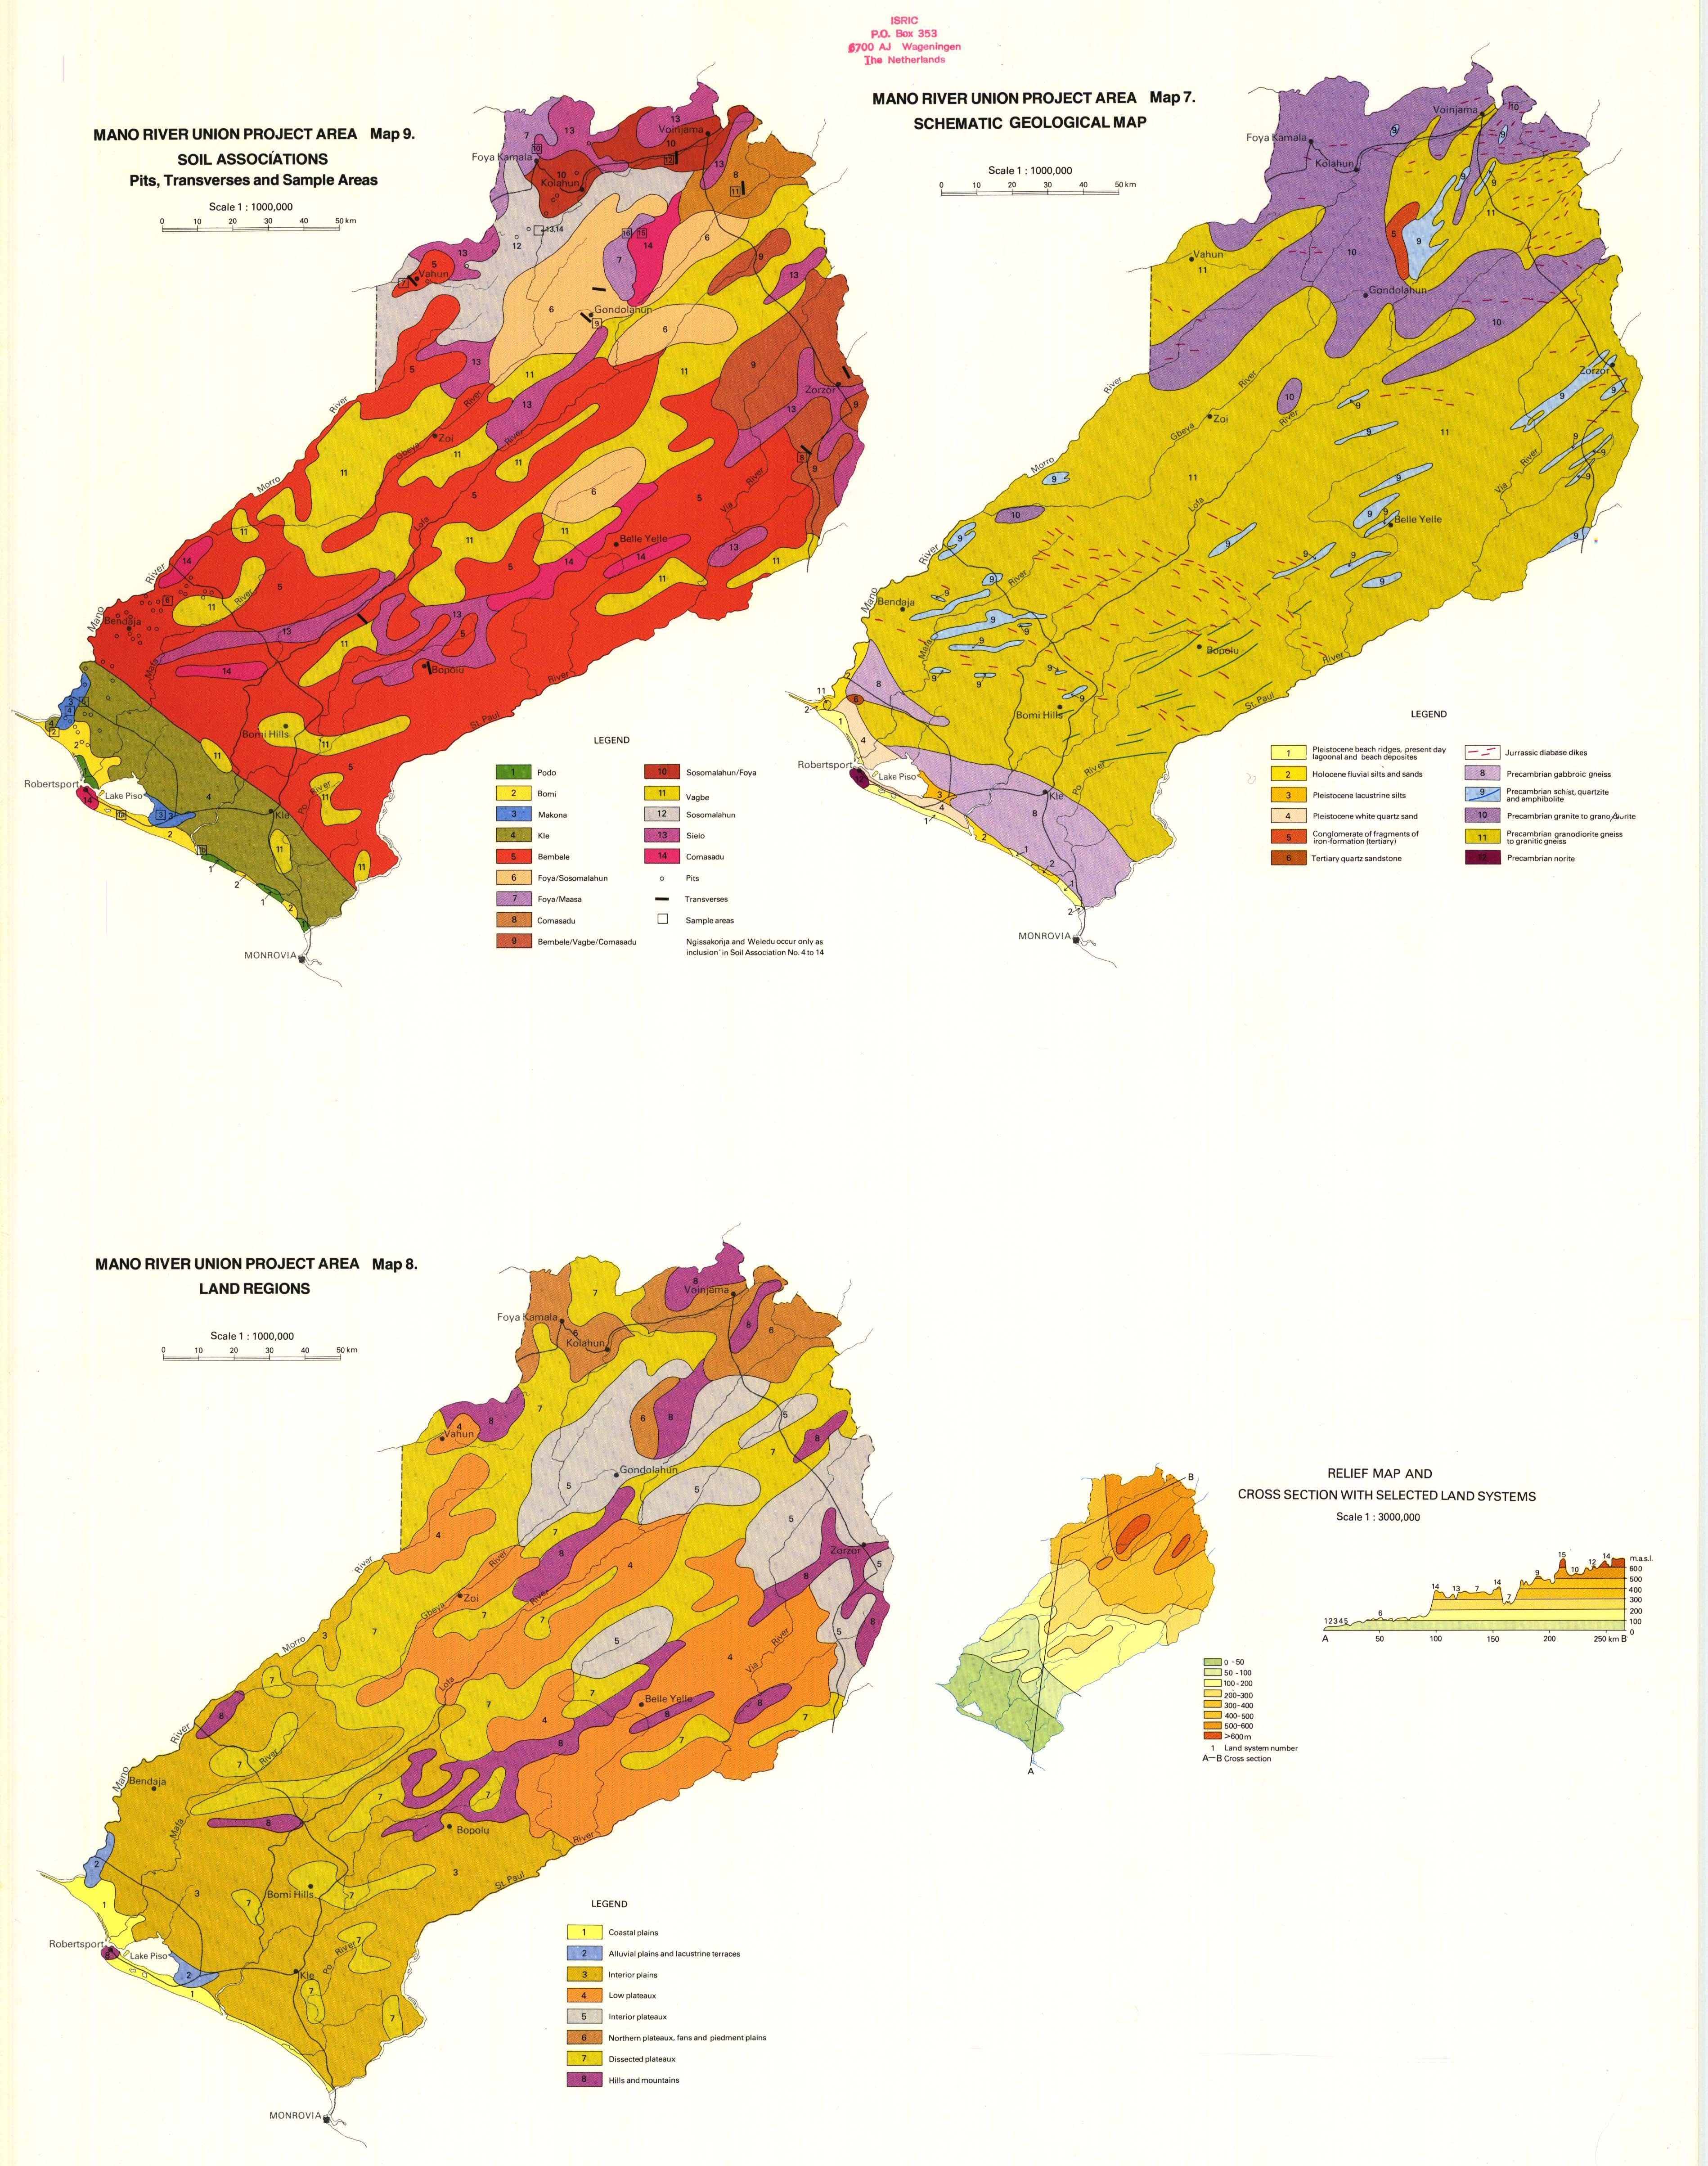 National Soil Maps Eudasm Esdac European Commission Block Diagram Hpdeskjet300400 Schematic Geological Map 8 Land Regions 9 Associations Pits Transverses And Sample Areas Relief Cross Section With Selected